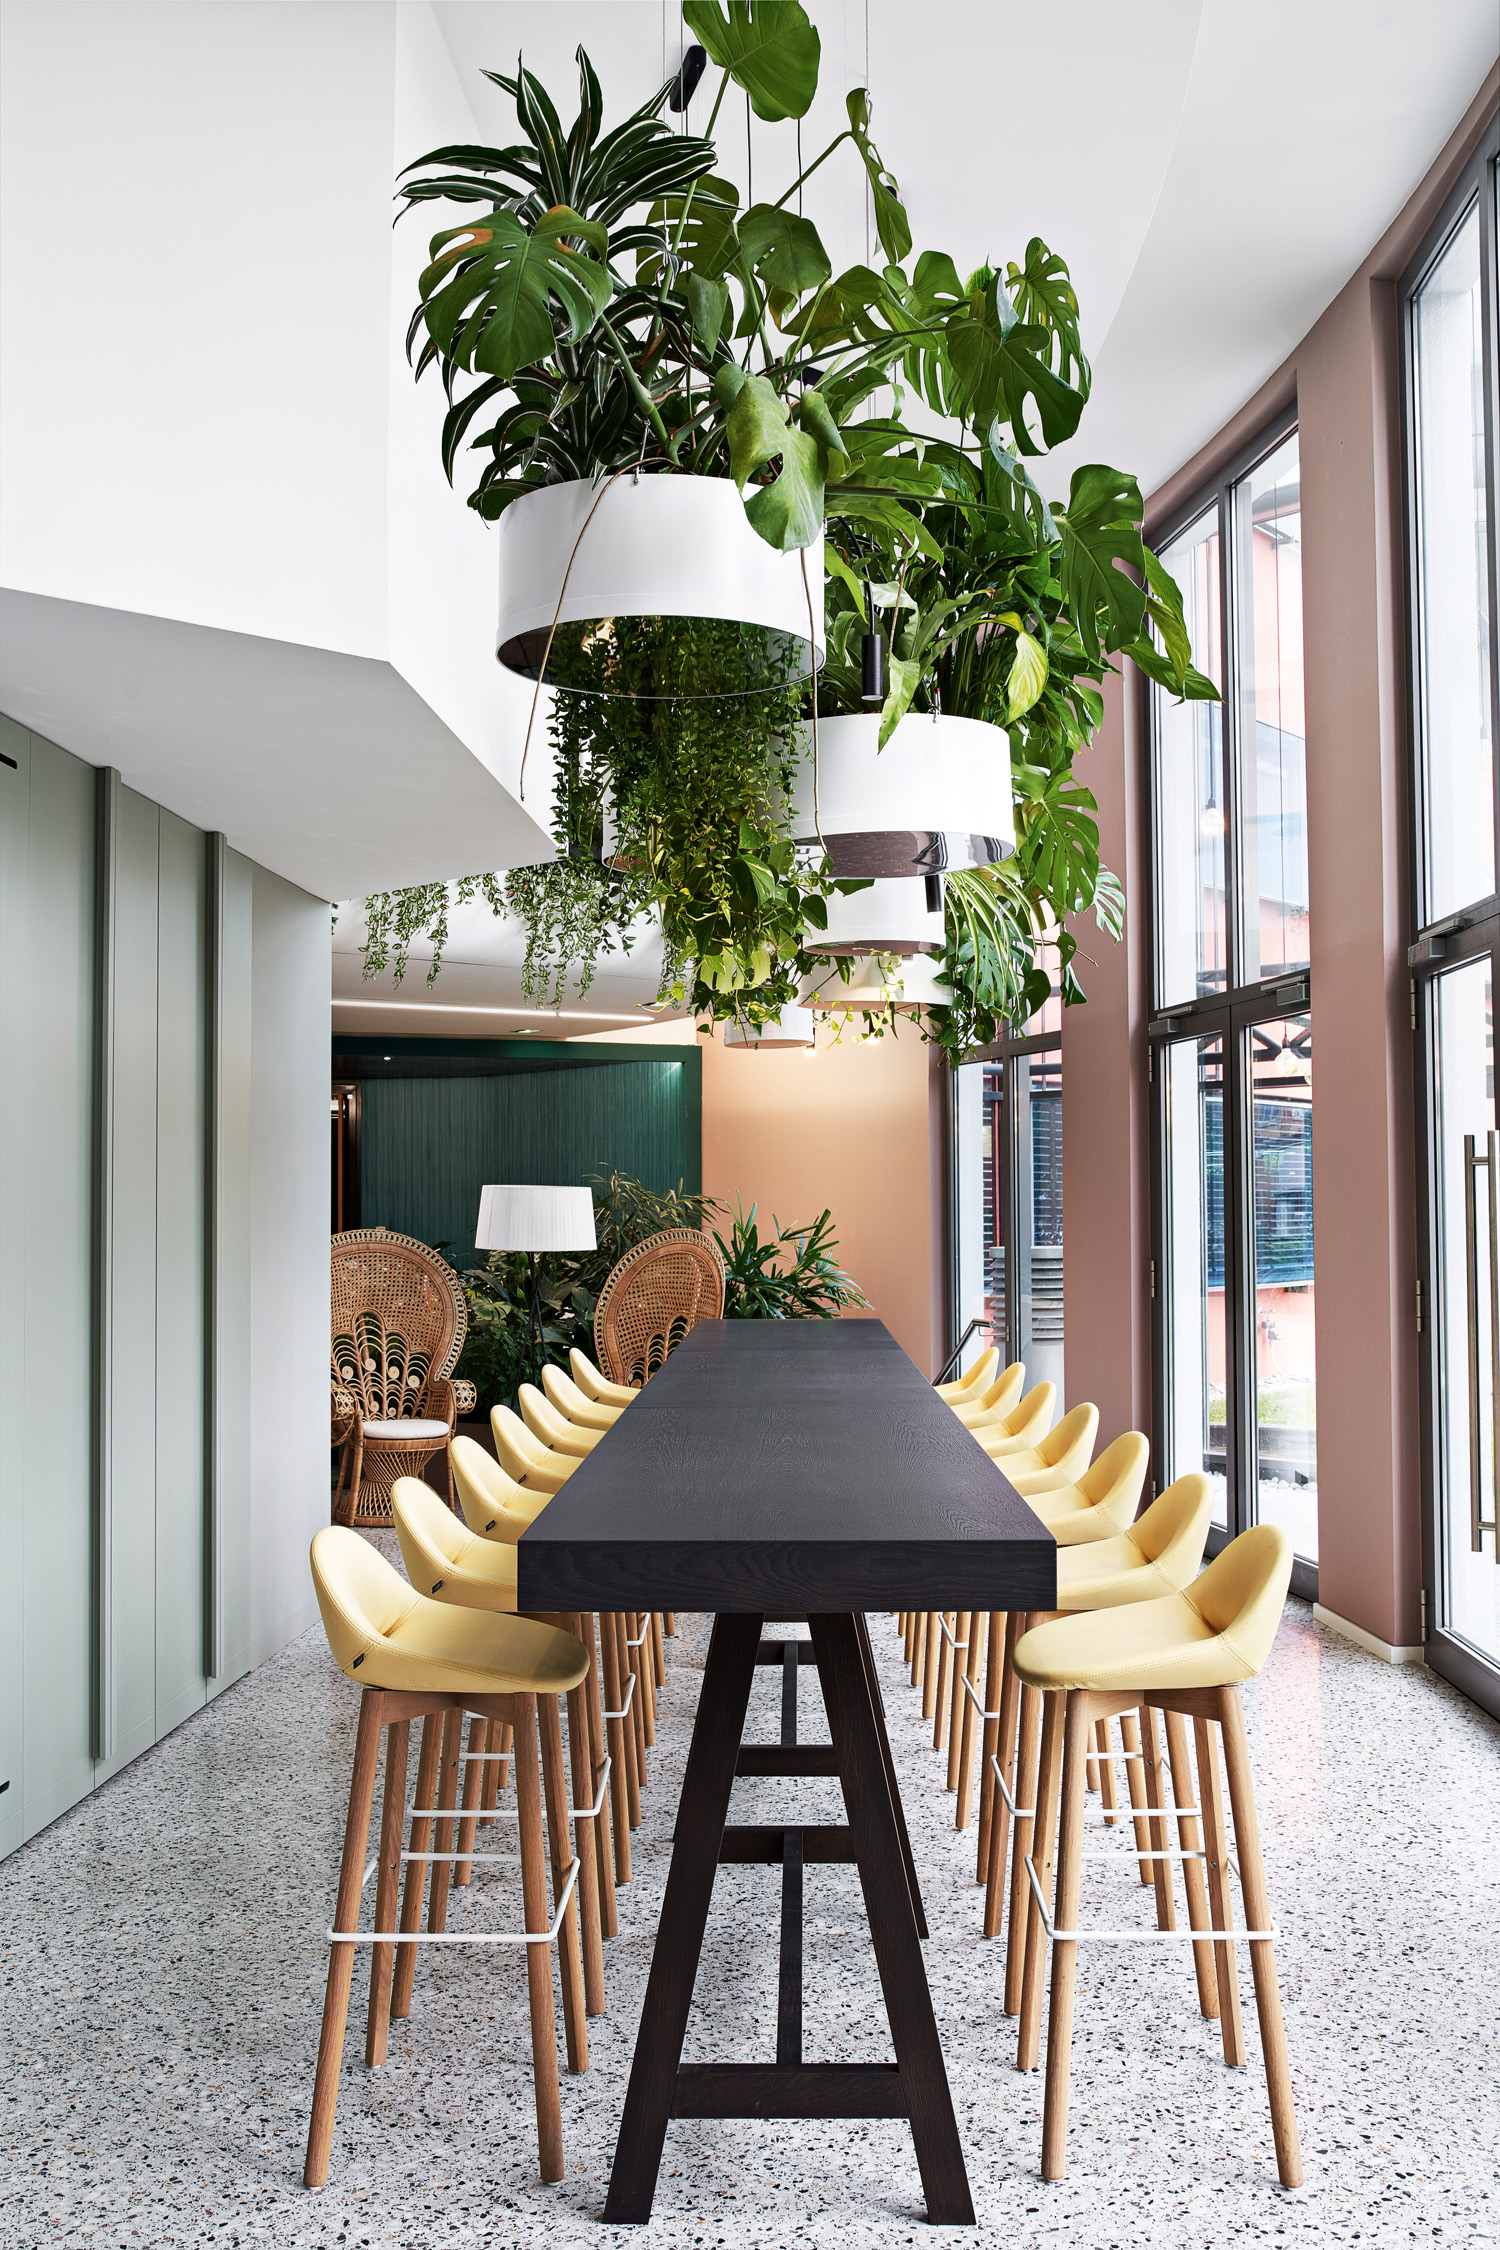 © Philip Kottlorz, courtesy Ippolito Fleitz Group The 2,100 green plants dotted around the environment improve air quality and mitigate room noise. They also help raise general levels of wellbeing, improving moods, reducing stress levels, increasing creativity and enhancing performance.